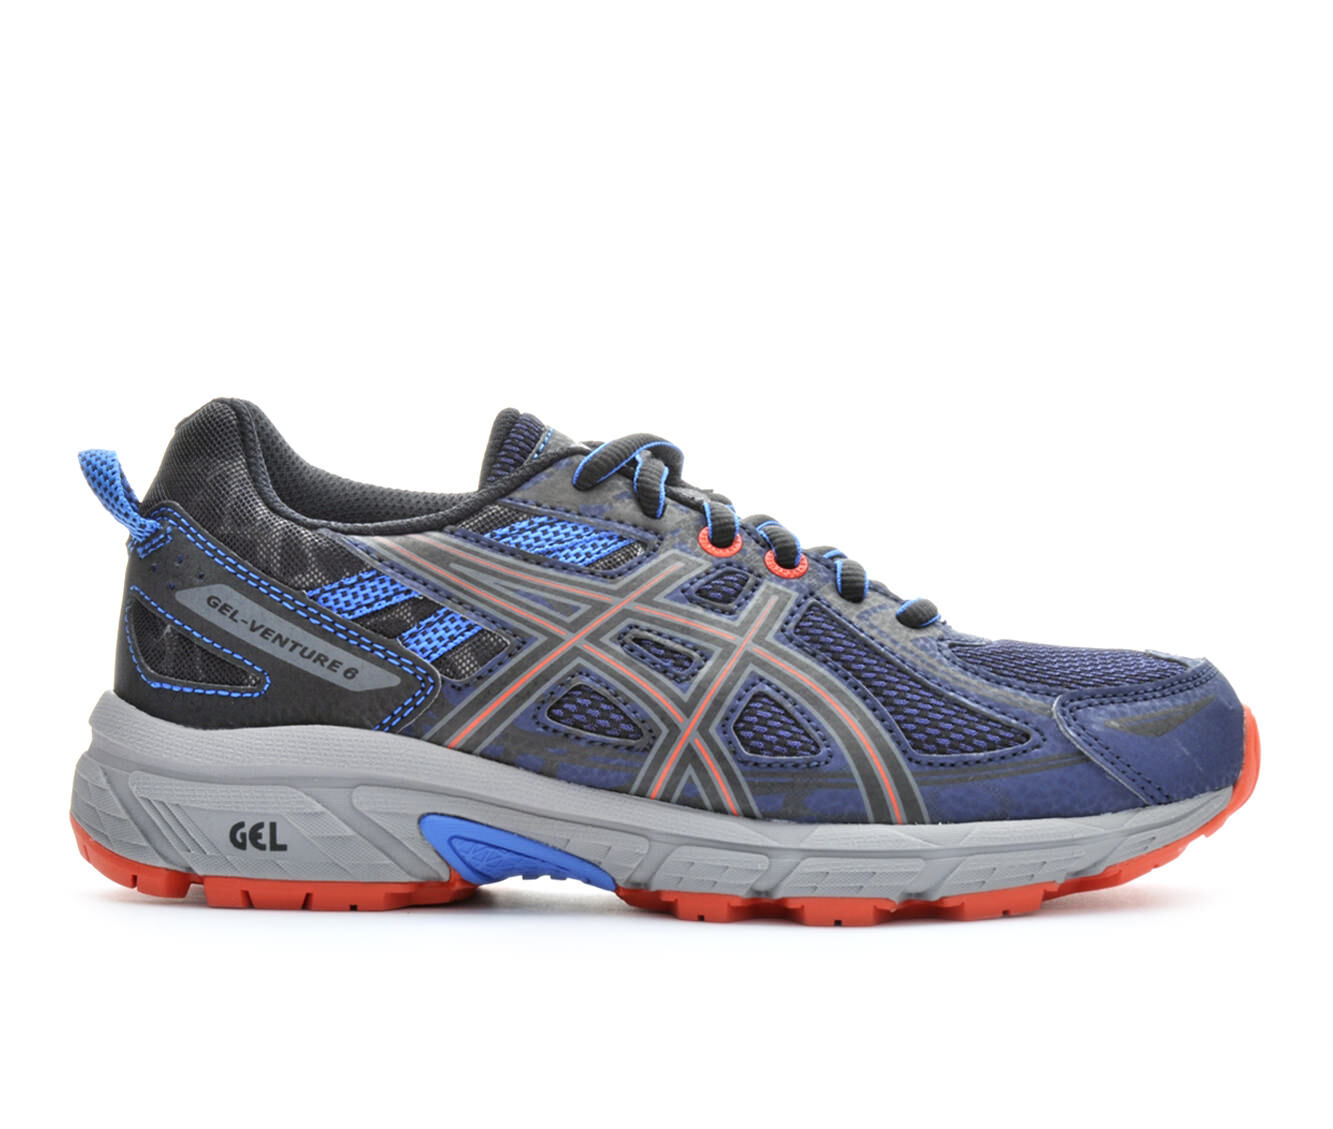 Boys' ASICS Gel Venture 6 1-7 Running Shoes